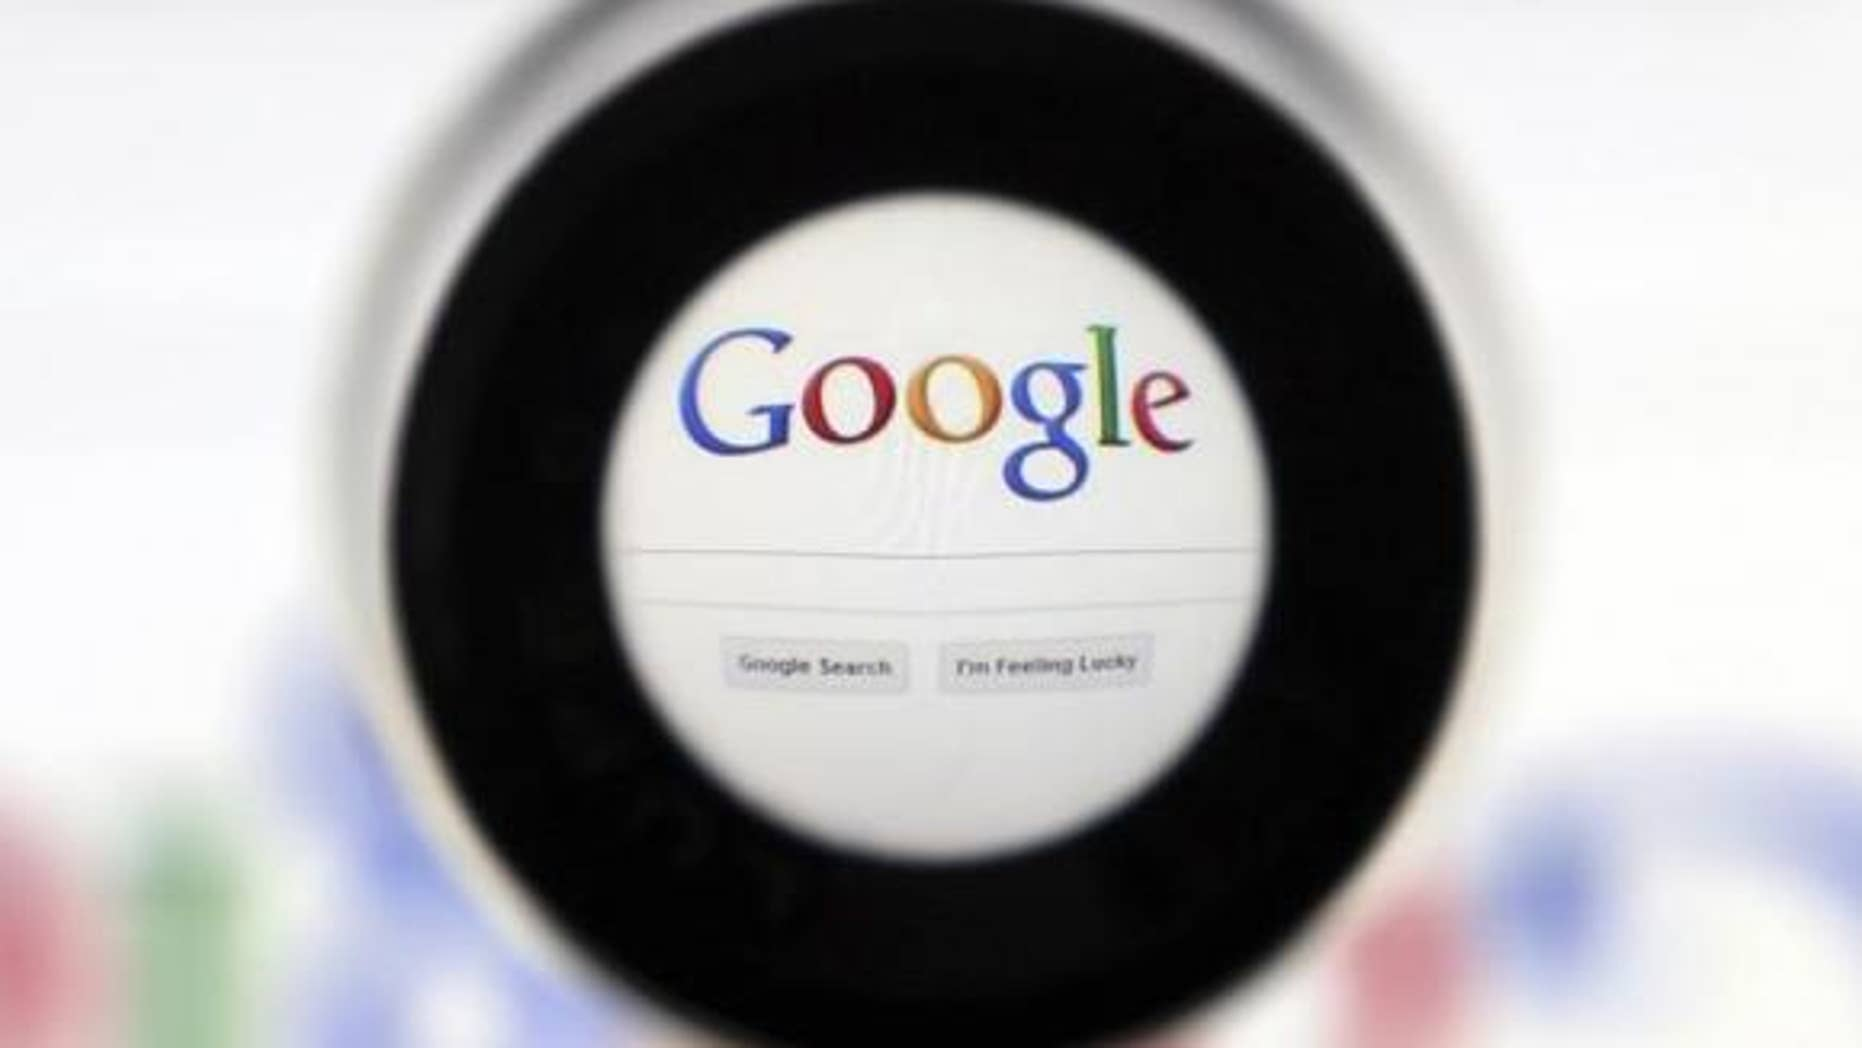 May 30, 2014: A file photo of a Google search page is seen through a magnifying glass in this photo illustration taken in Brussels.